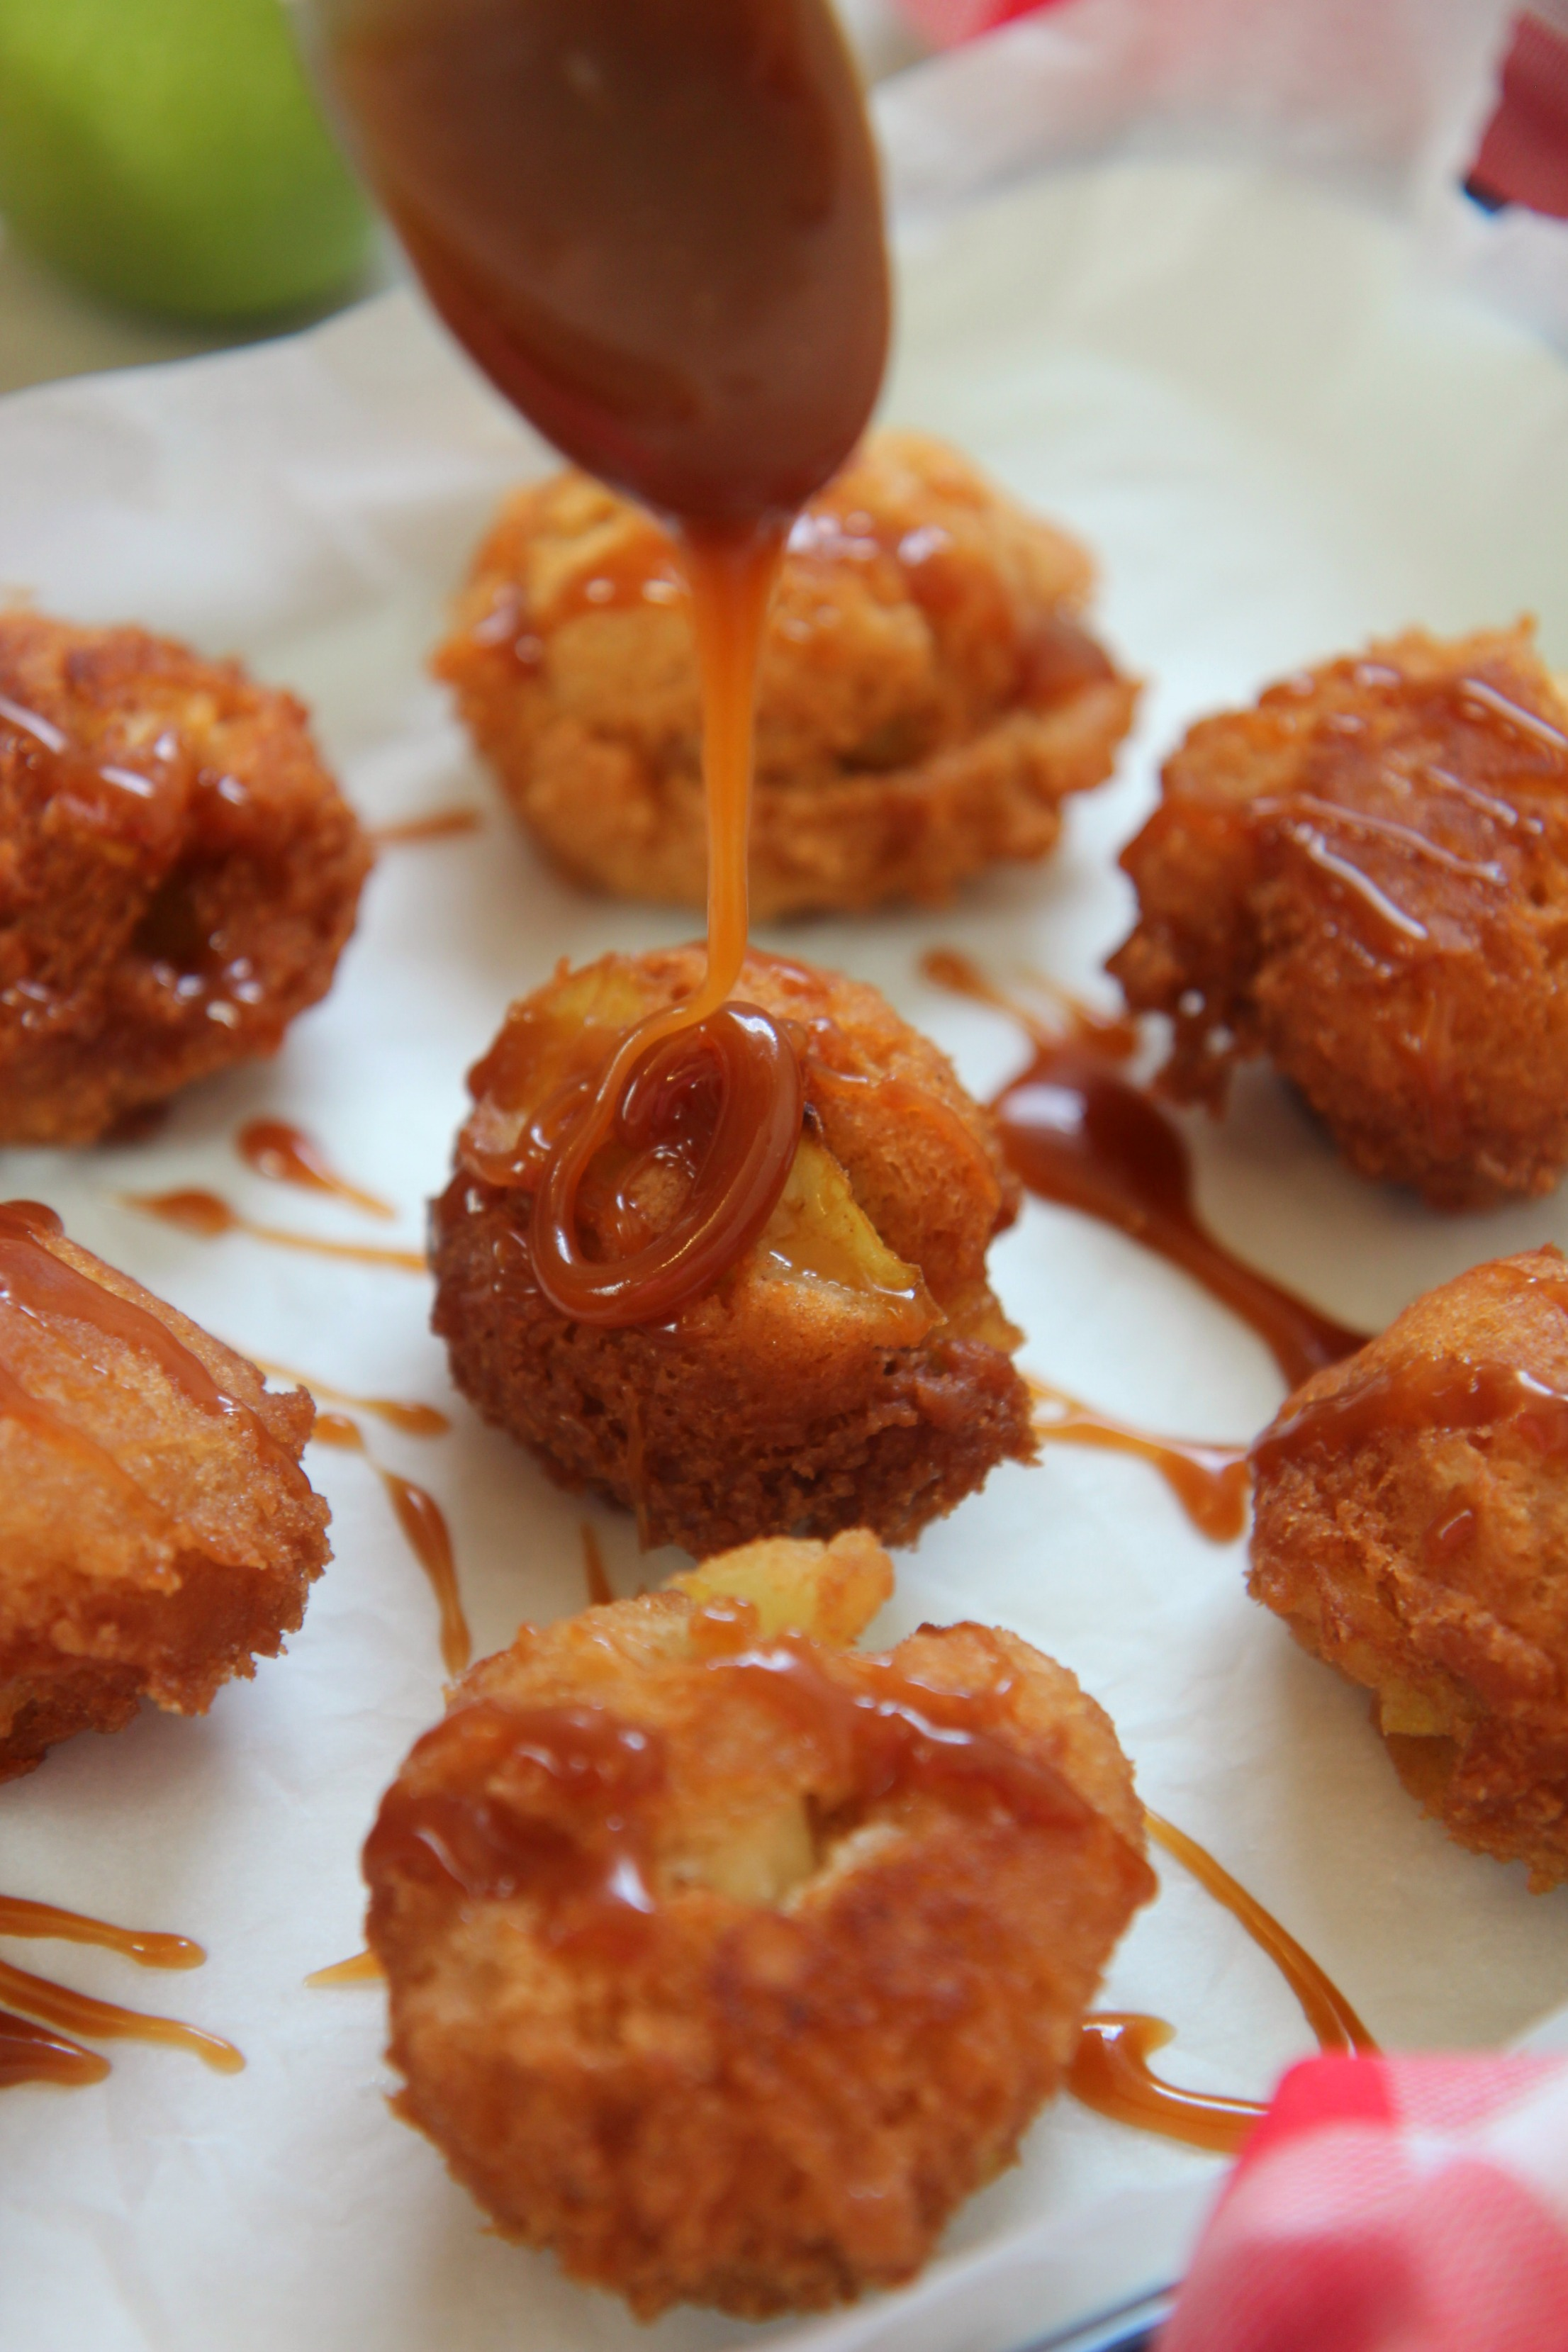 Caramel drizzled apple fritters are a perfect sweet dessert